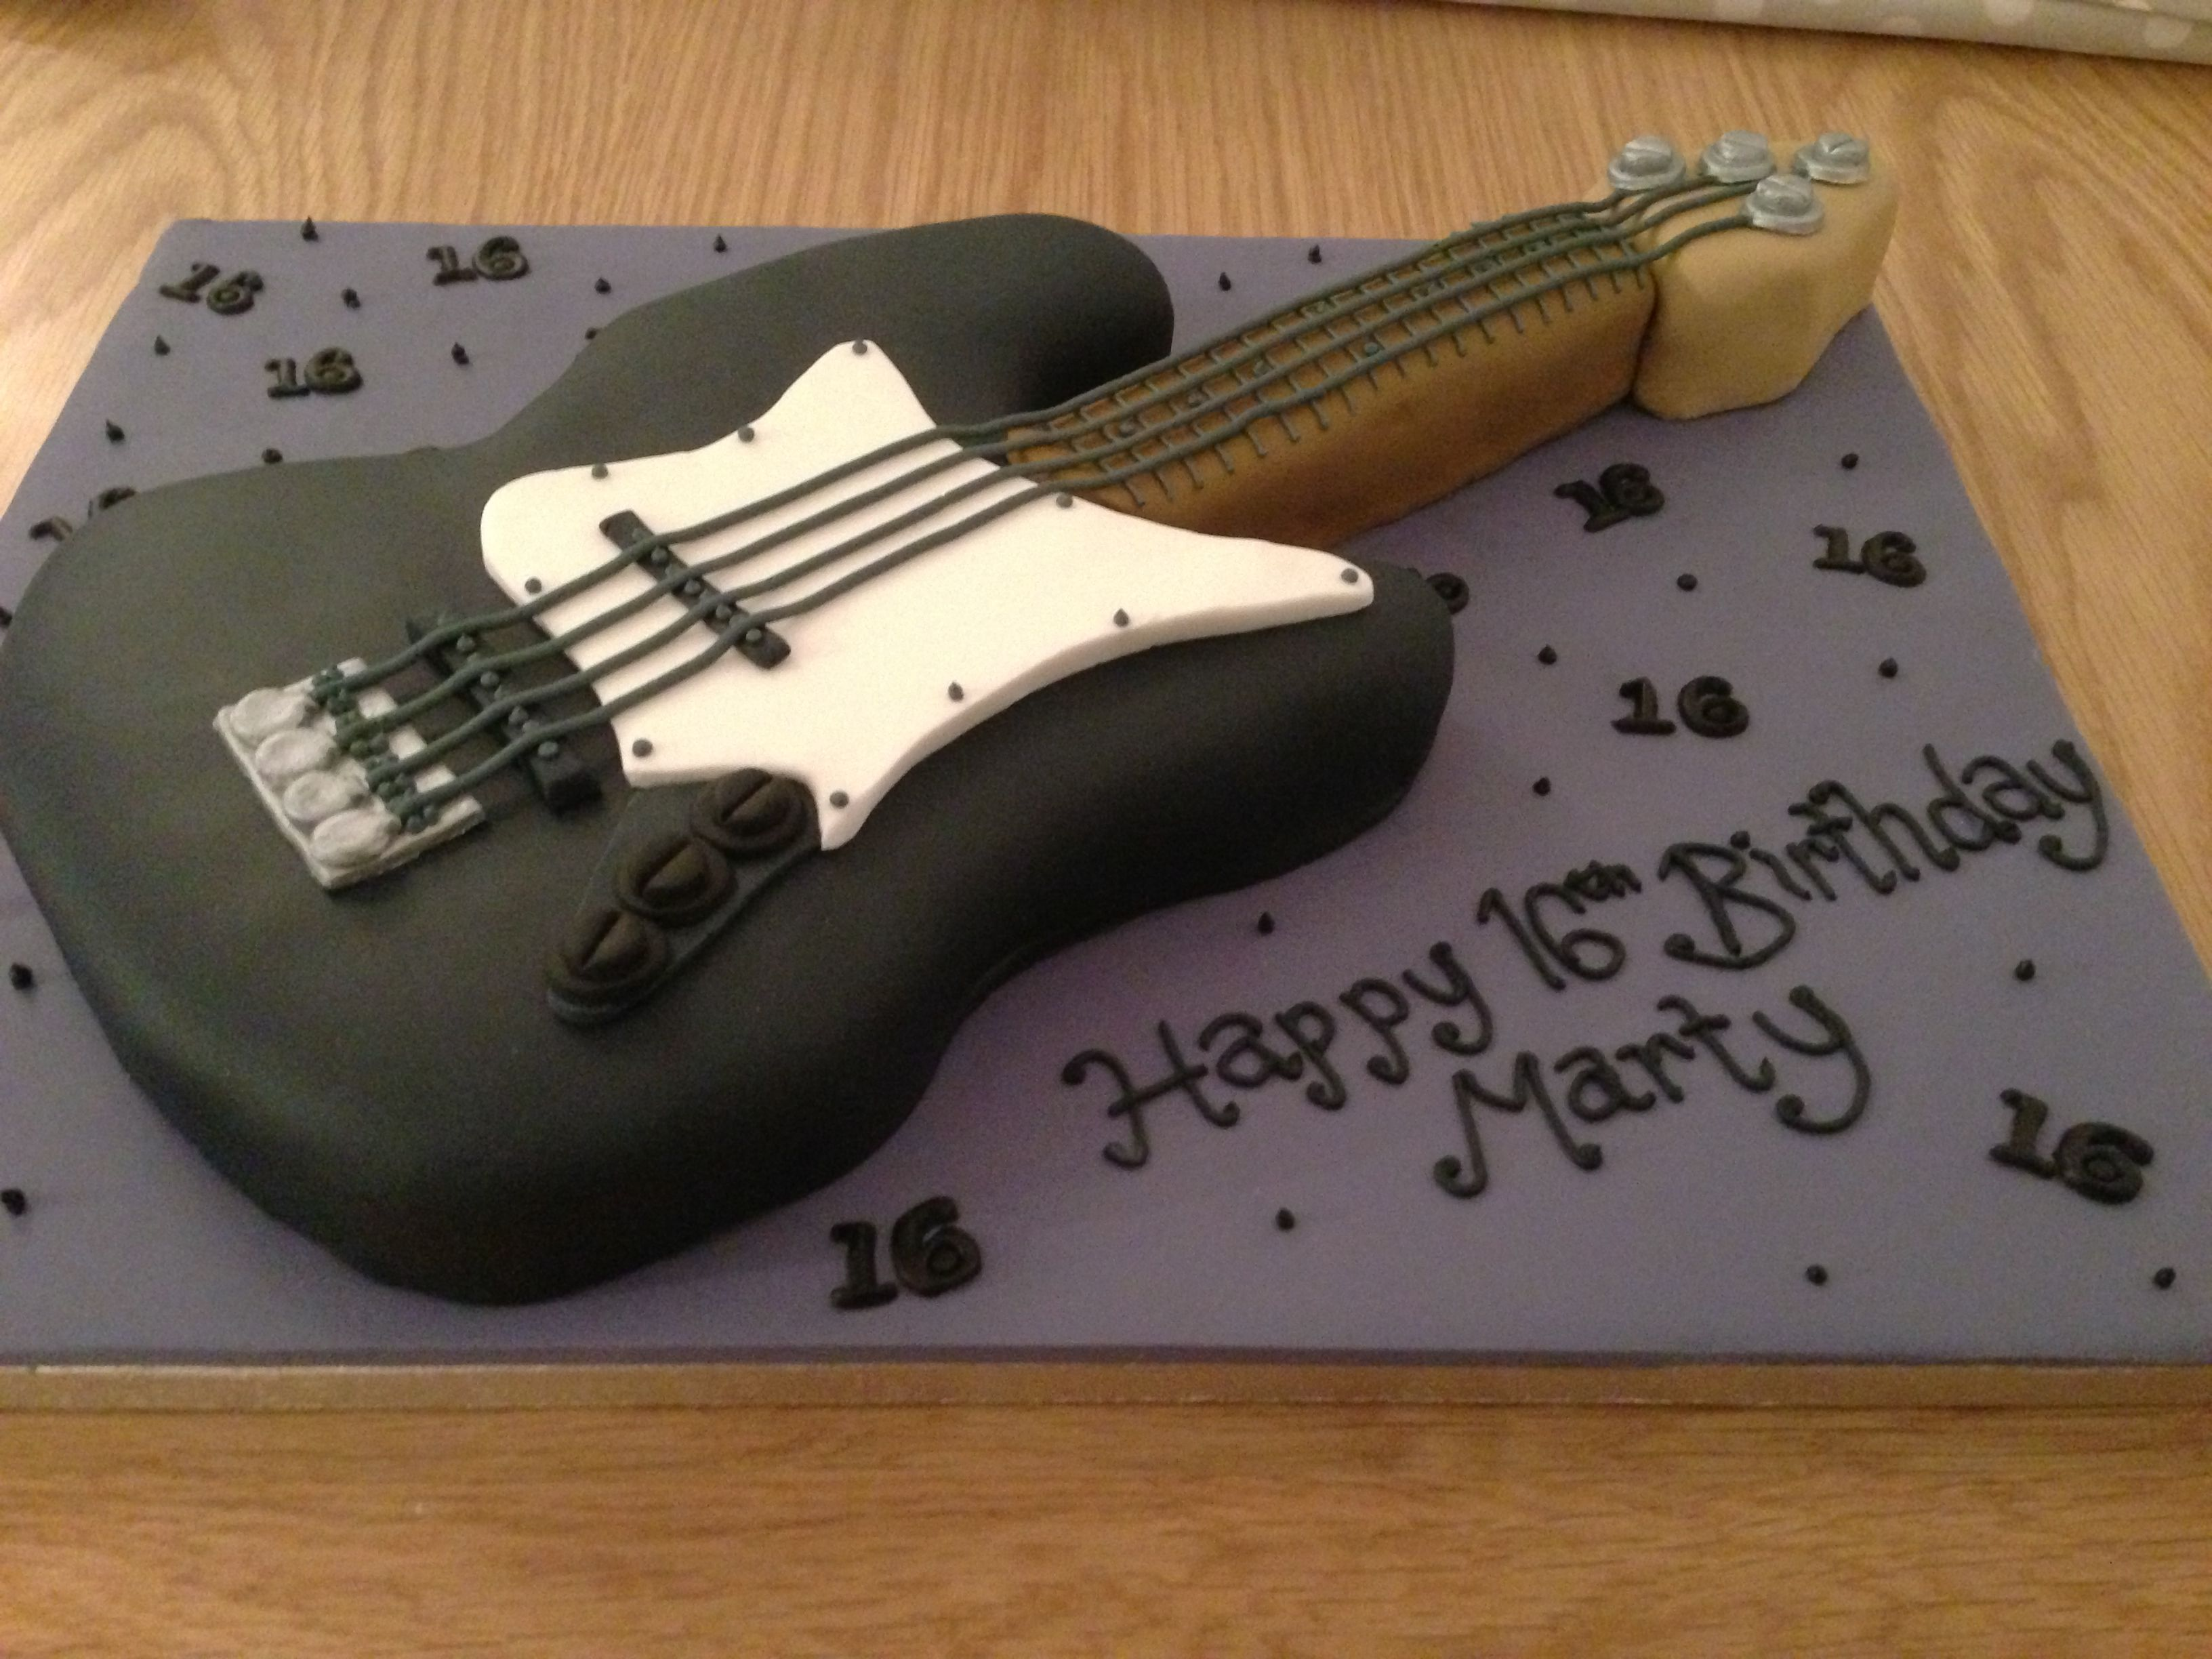 Guitar Shaped Birthday Cake Images : 16th birthday guitar shaped cake For The Hubby